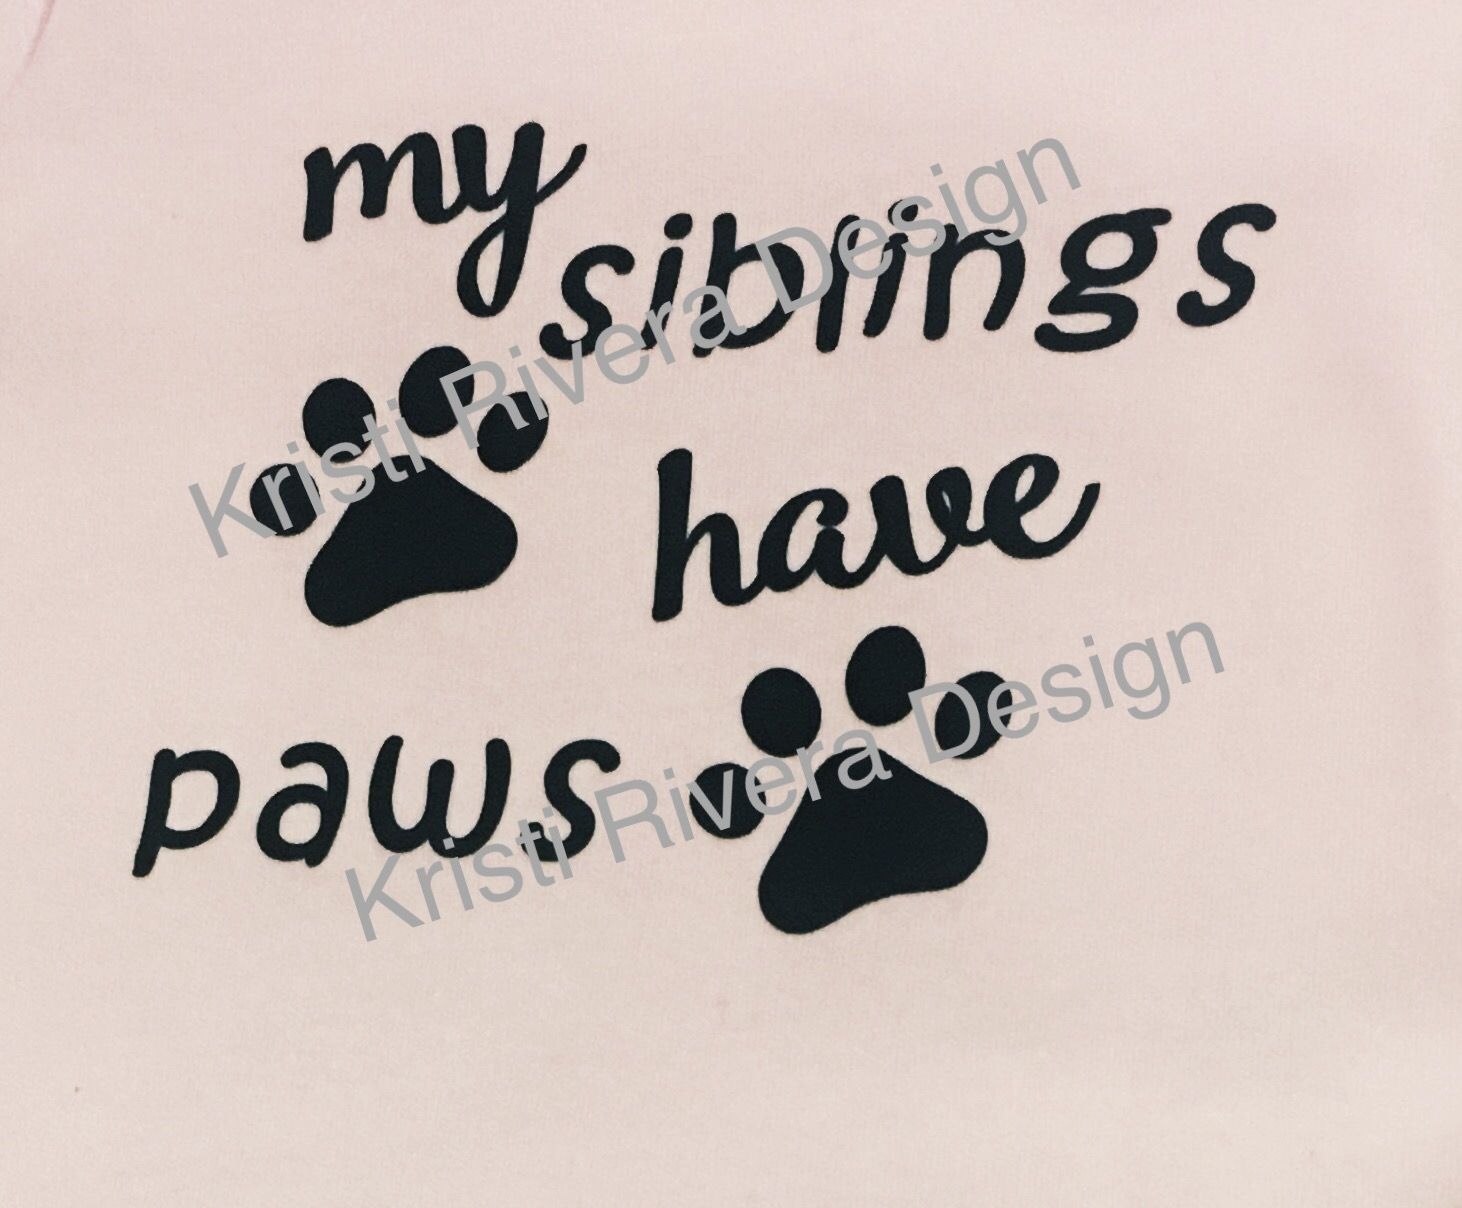 My siblings have paws.Infant shirt design. Heat transfer